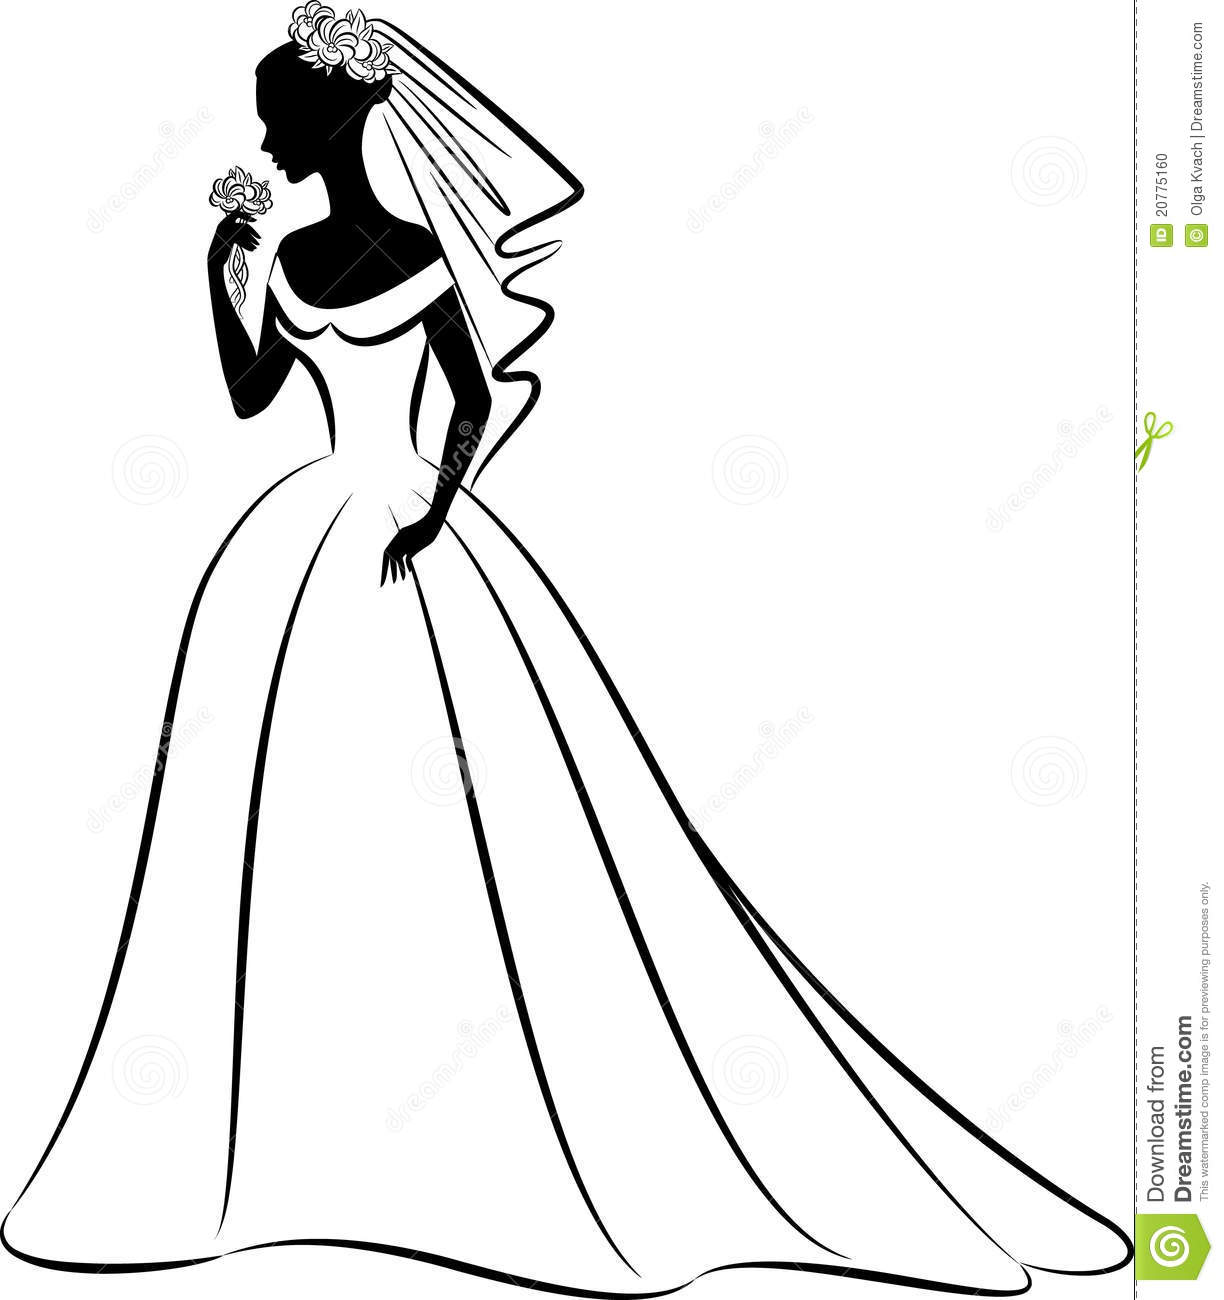 Bride with long train clipart clip library download Bride clipart ball gown - 30 transparent clip arts, images and ... clip library download